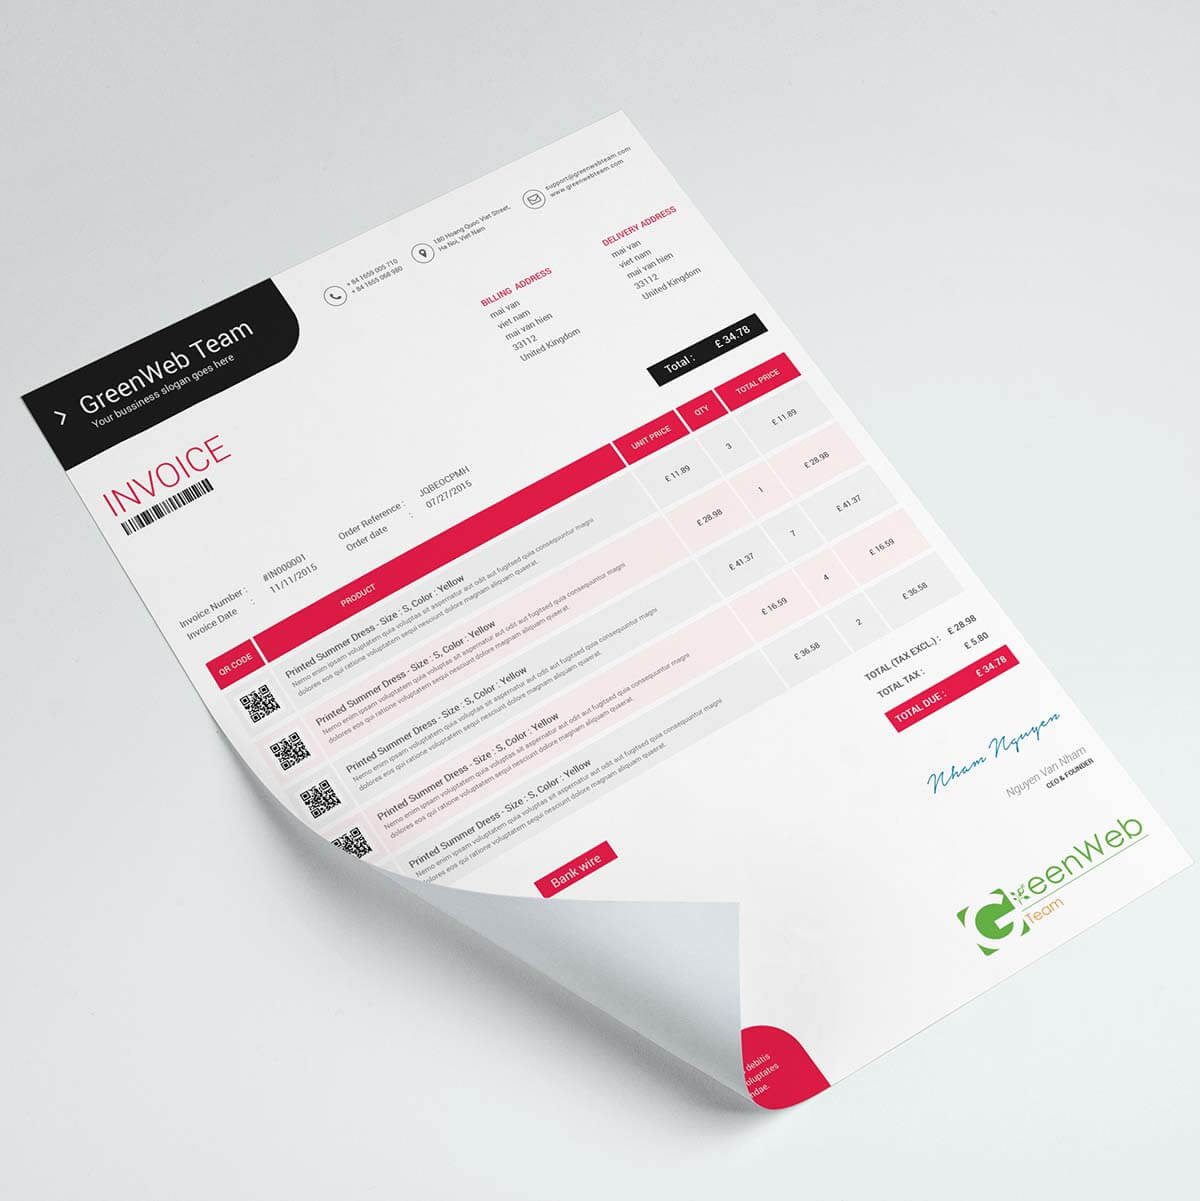 Cheesecake Receipts Pdf Invoice Template Builder  Edit Invoice  Delivery Template  Text Invoice Excel with Prorated Invoice Pdf Mockup Jpg  Meaning Of Invoice Excel